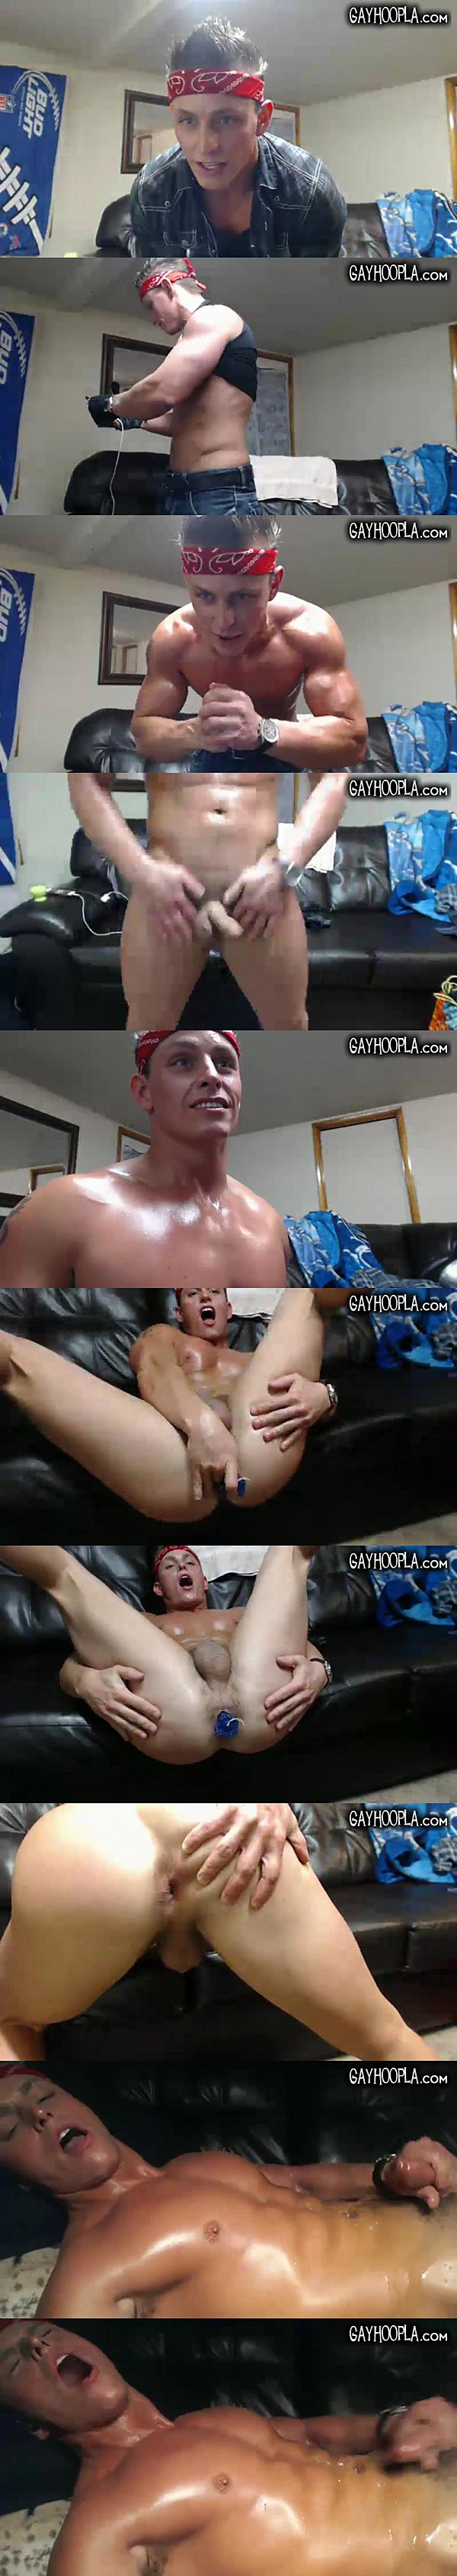 Hot young jock Lincoln Hawk dildo fucks himself and strokes a nice load out of his hard cock at Gayhoopla